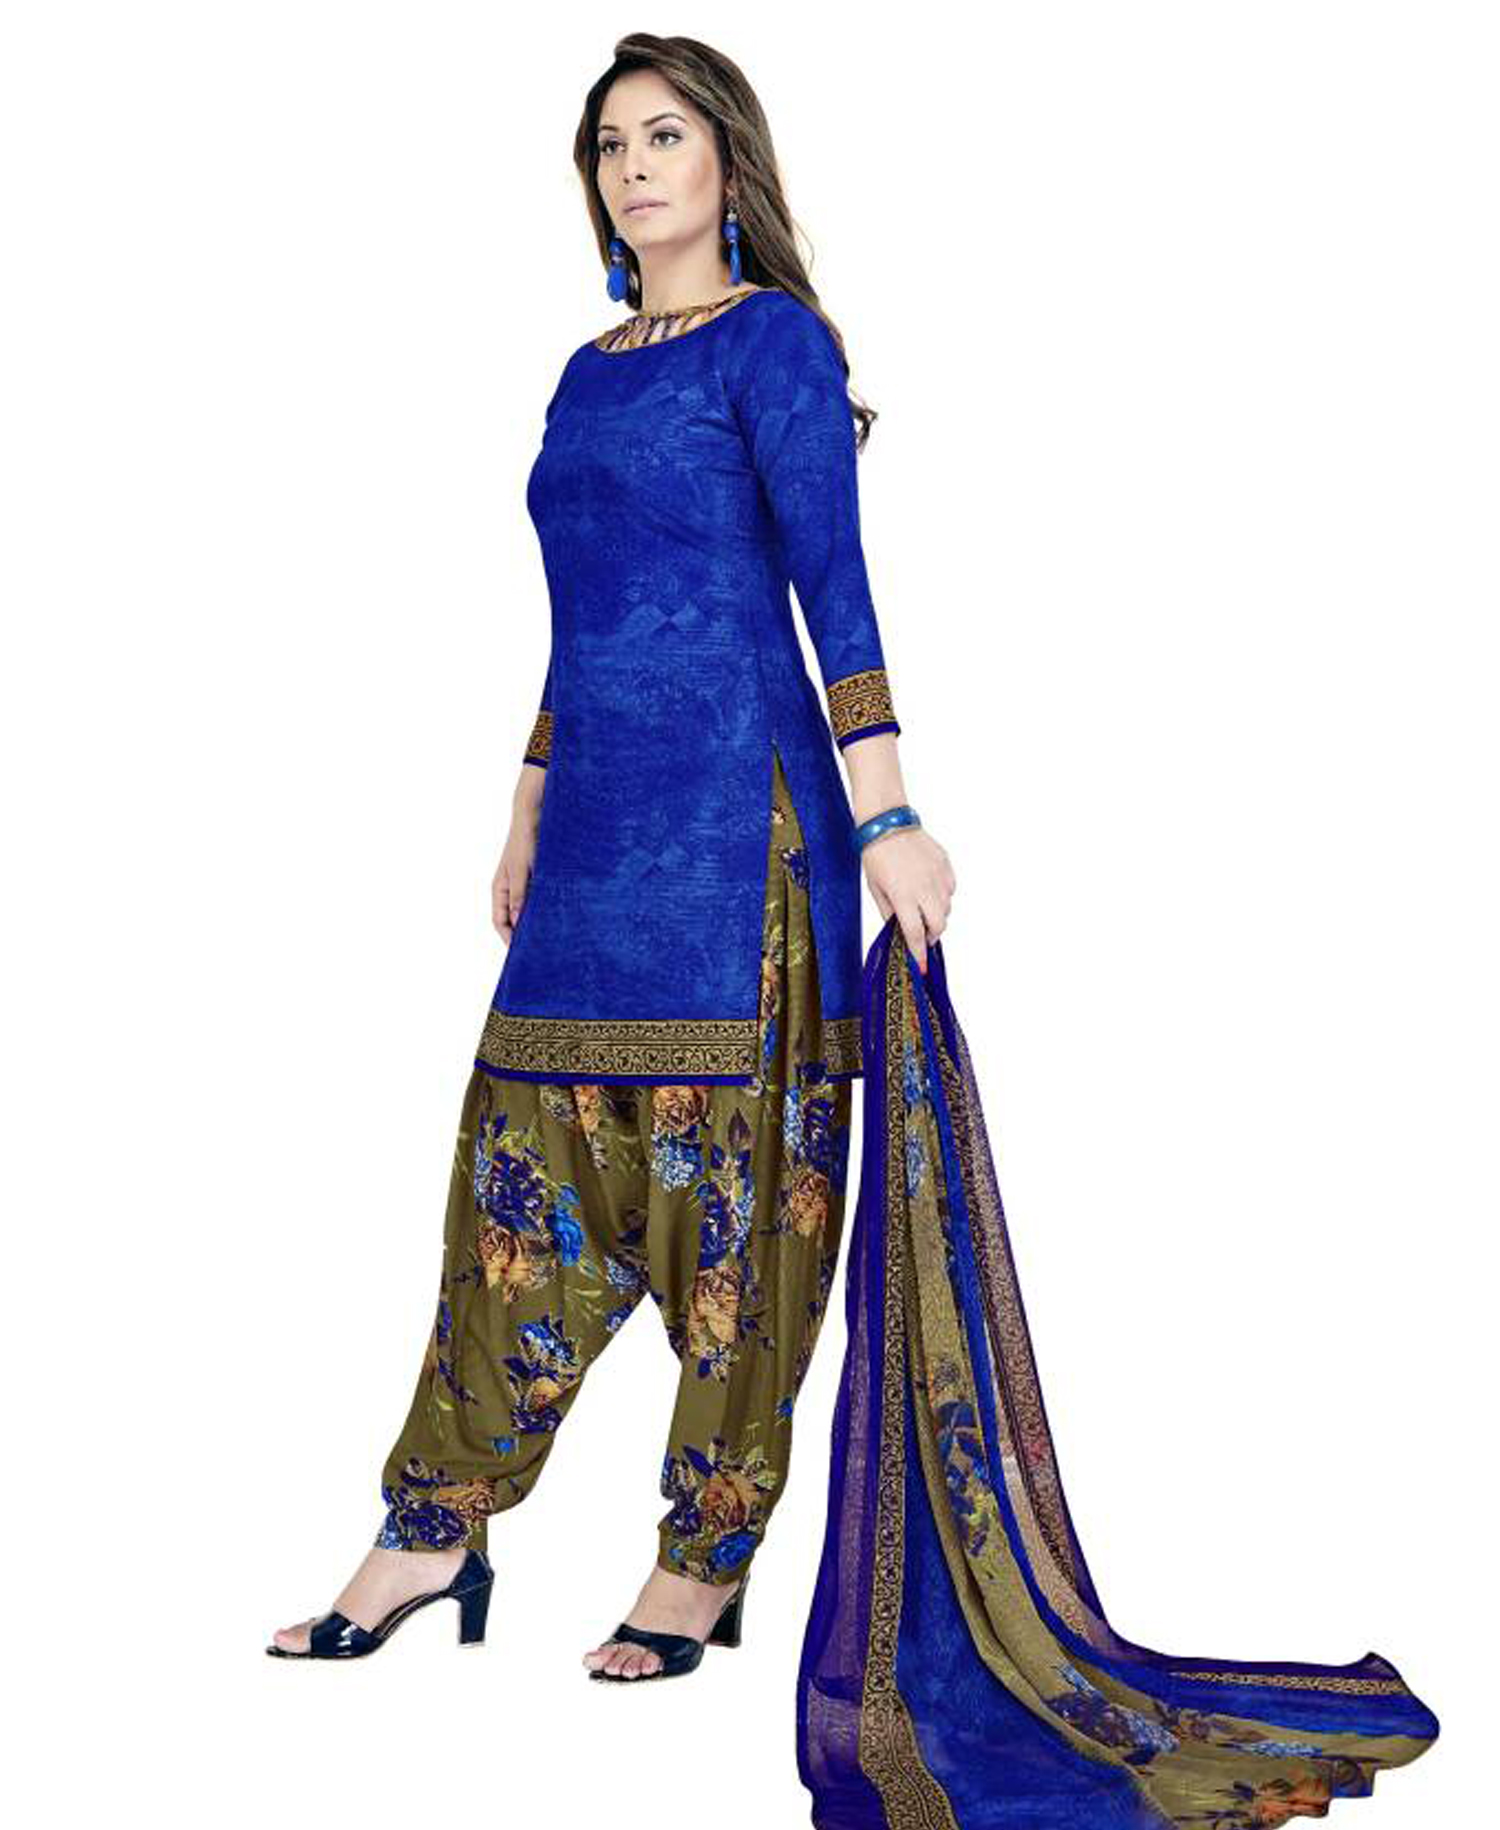 b0d007cd7 Fashion Valley Crepe Self Design Salwar Suit Dupatta Material (Un ...